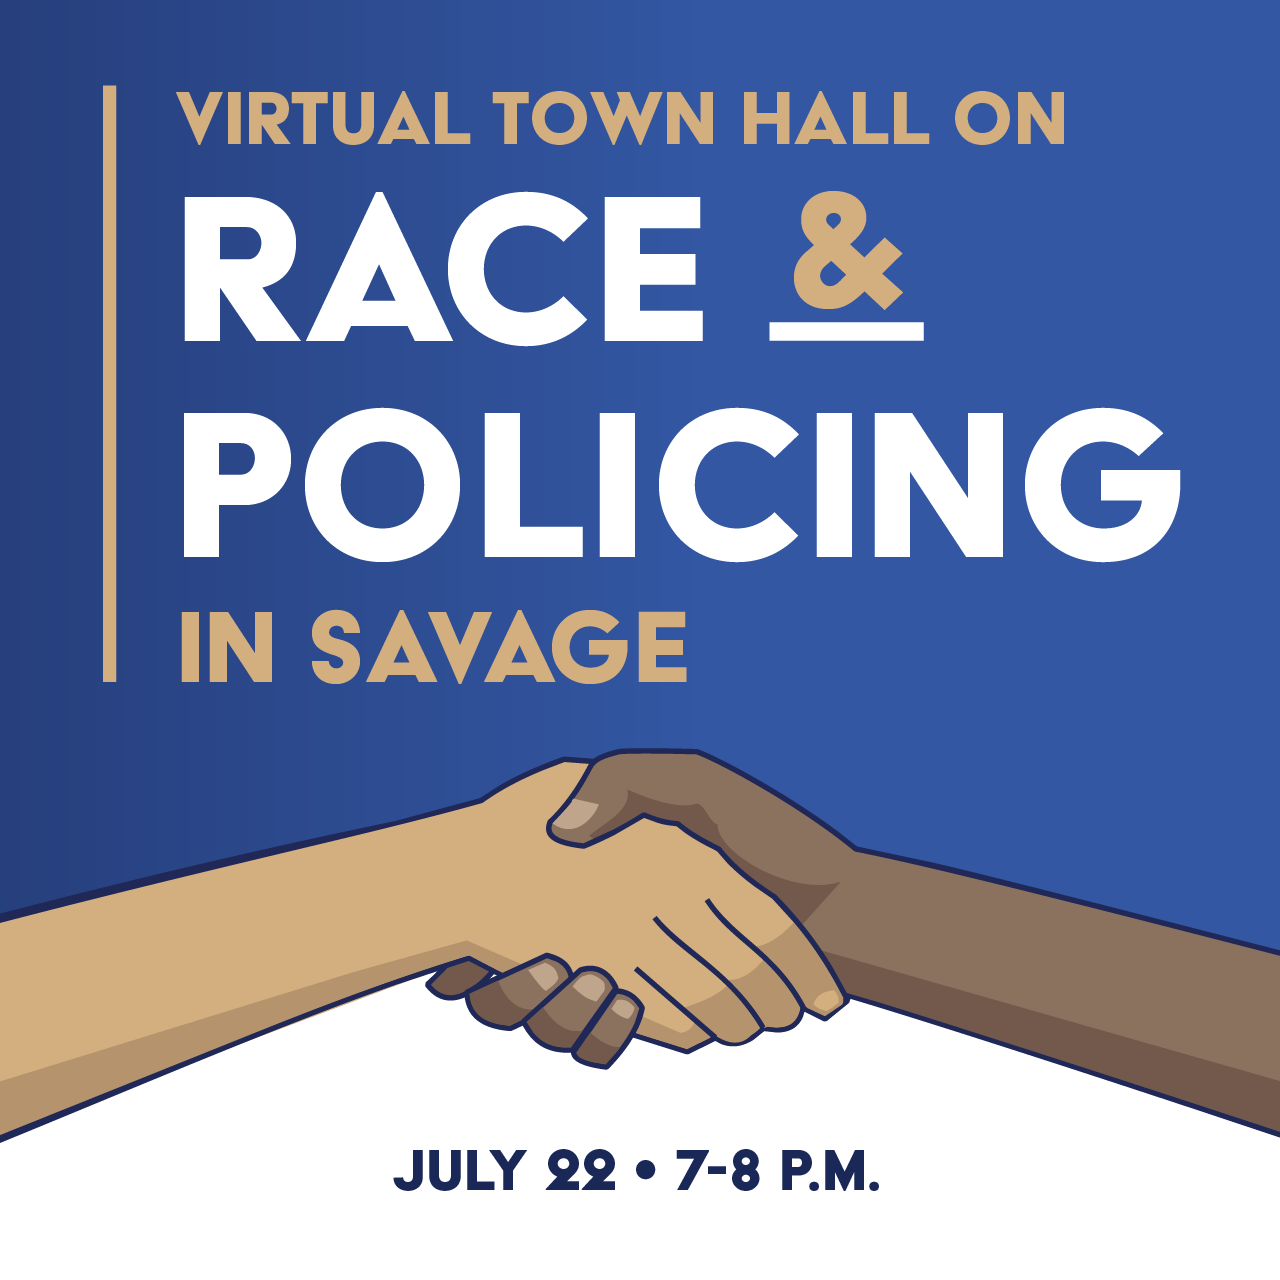 Watch the Virtual Town Hall on Race & Policing in Savage